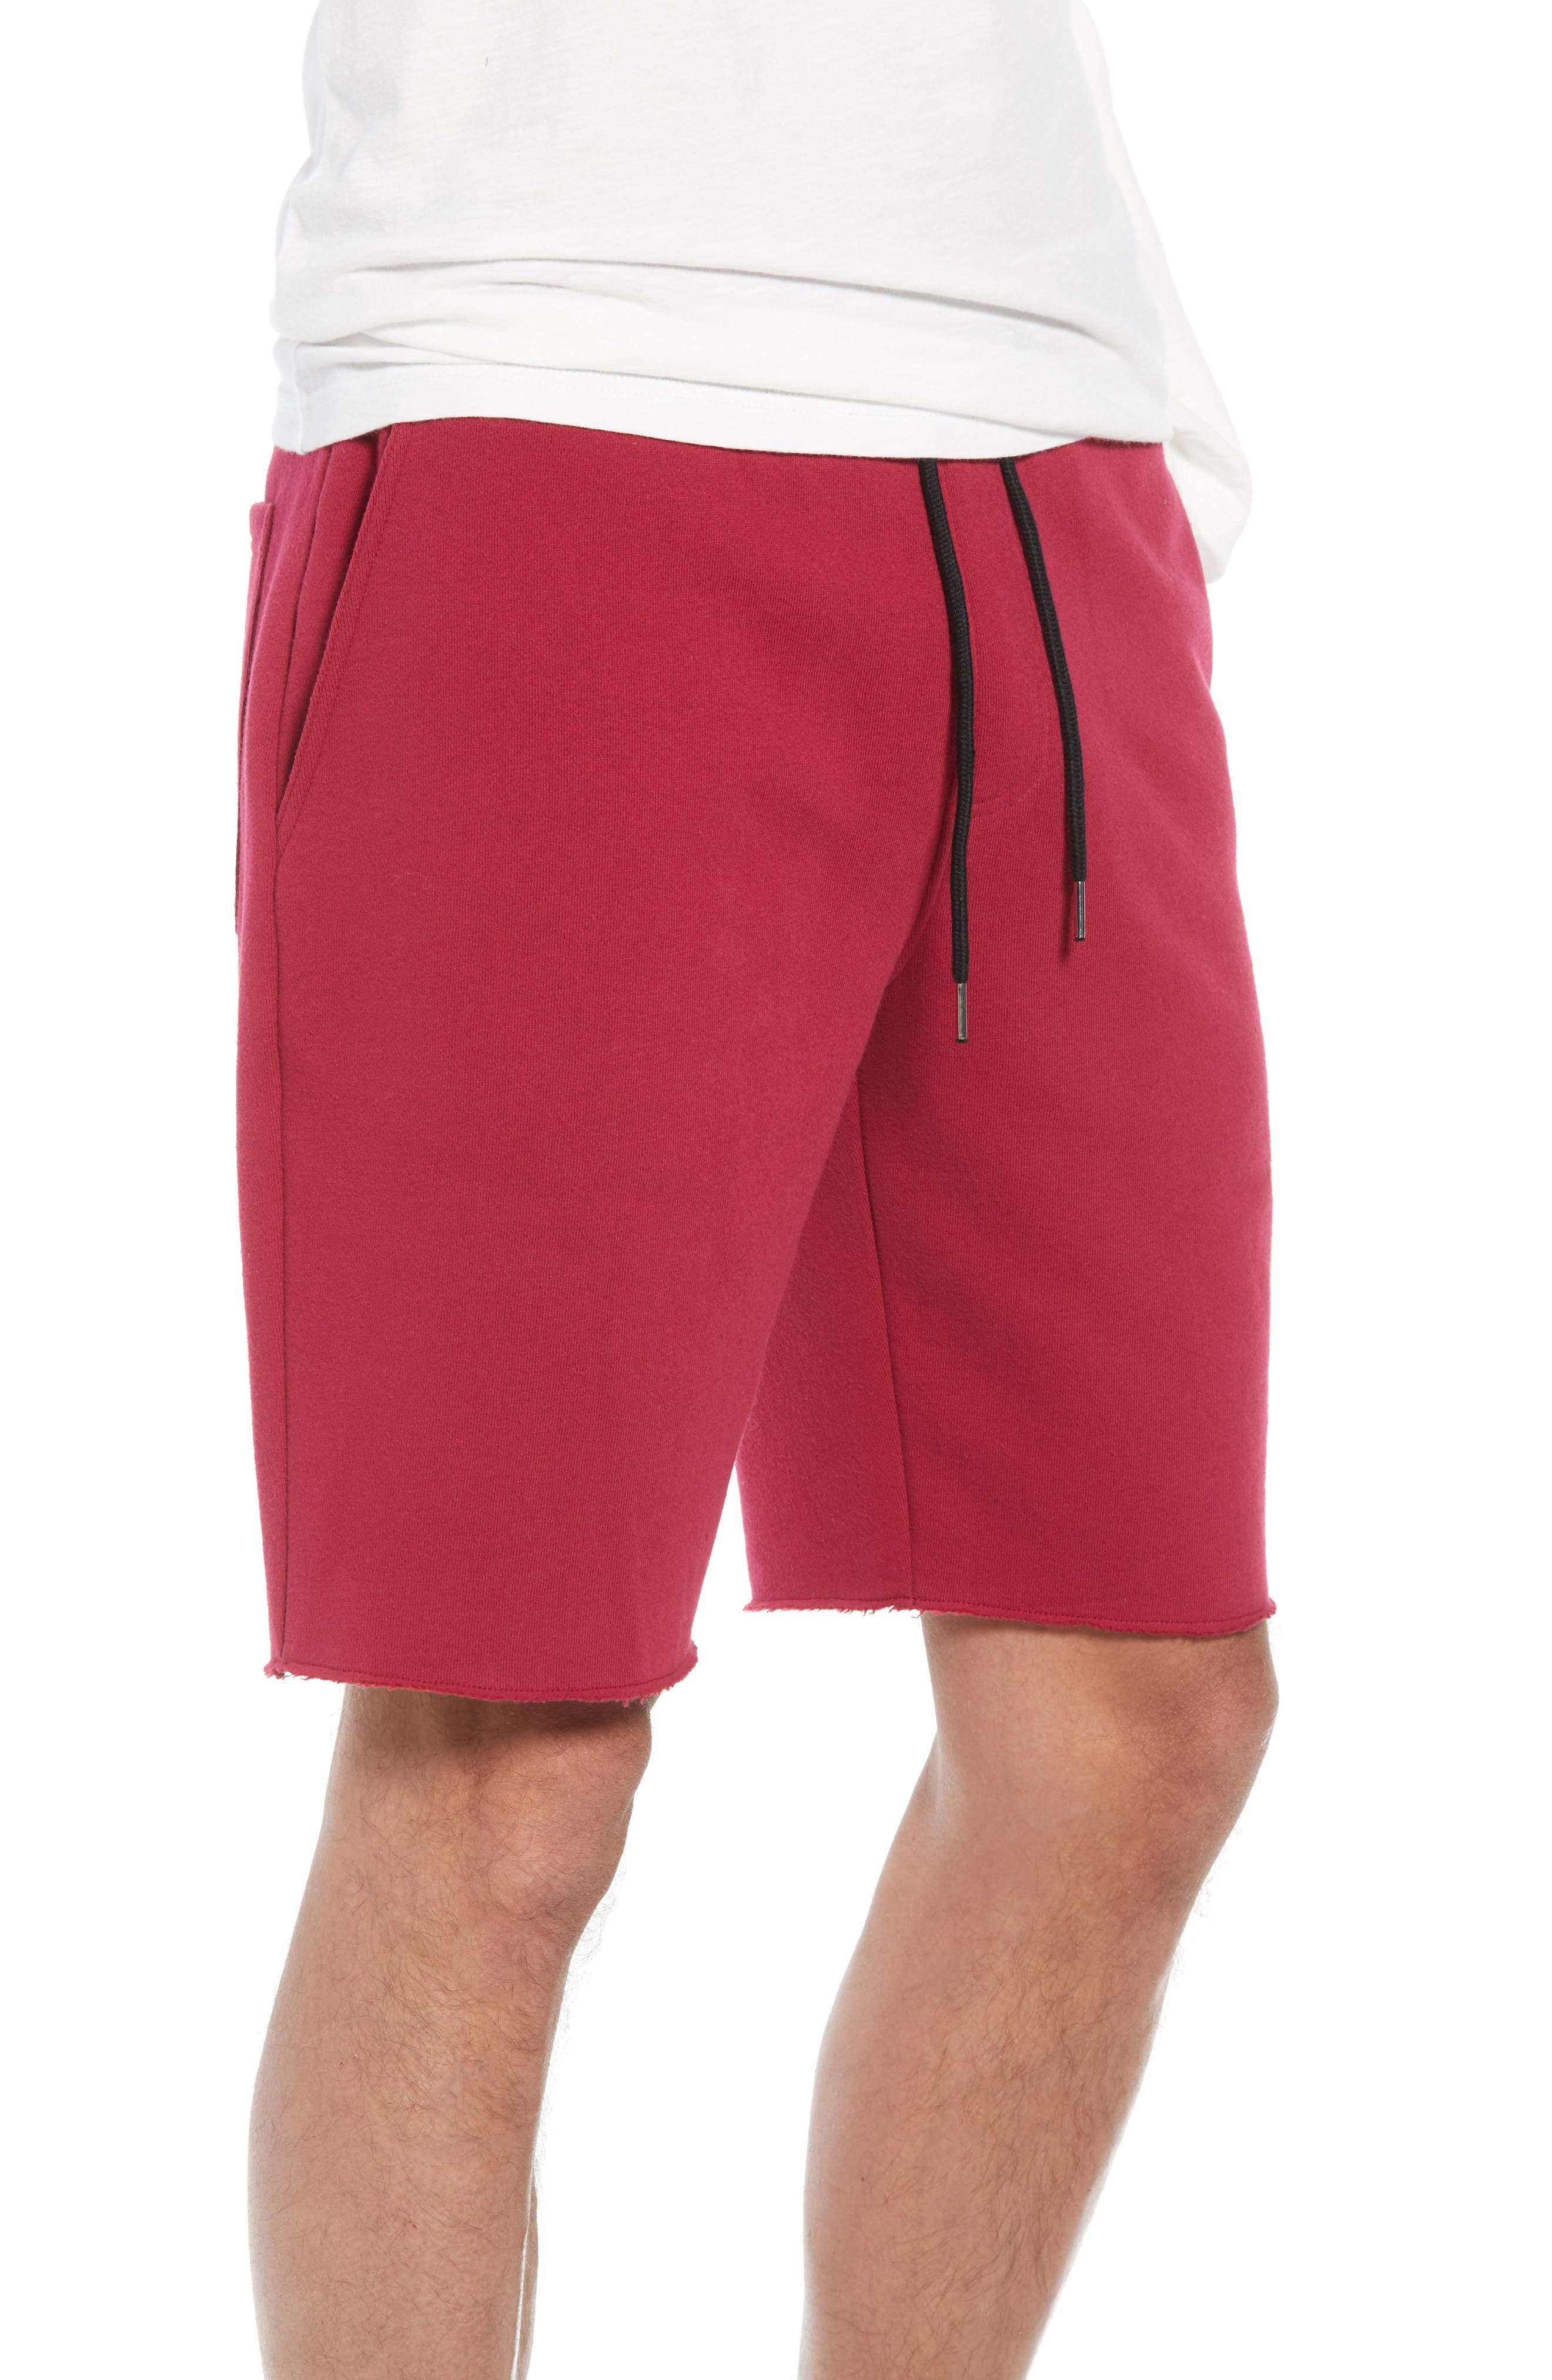 THE RAIL,                             Fleece Shorts,                             Alternate thumbnail 3, color,                             601